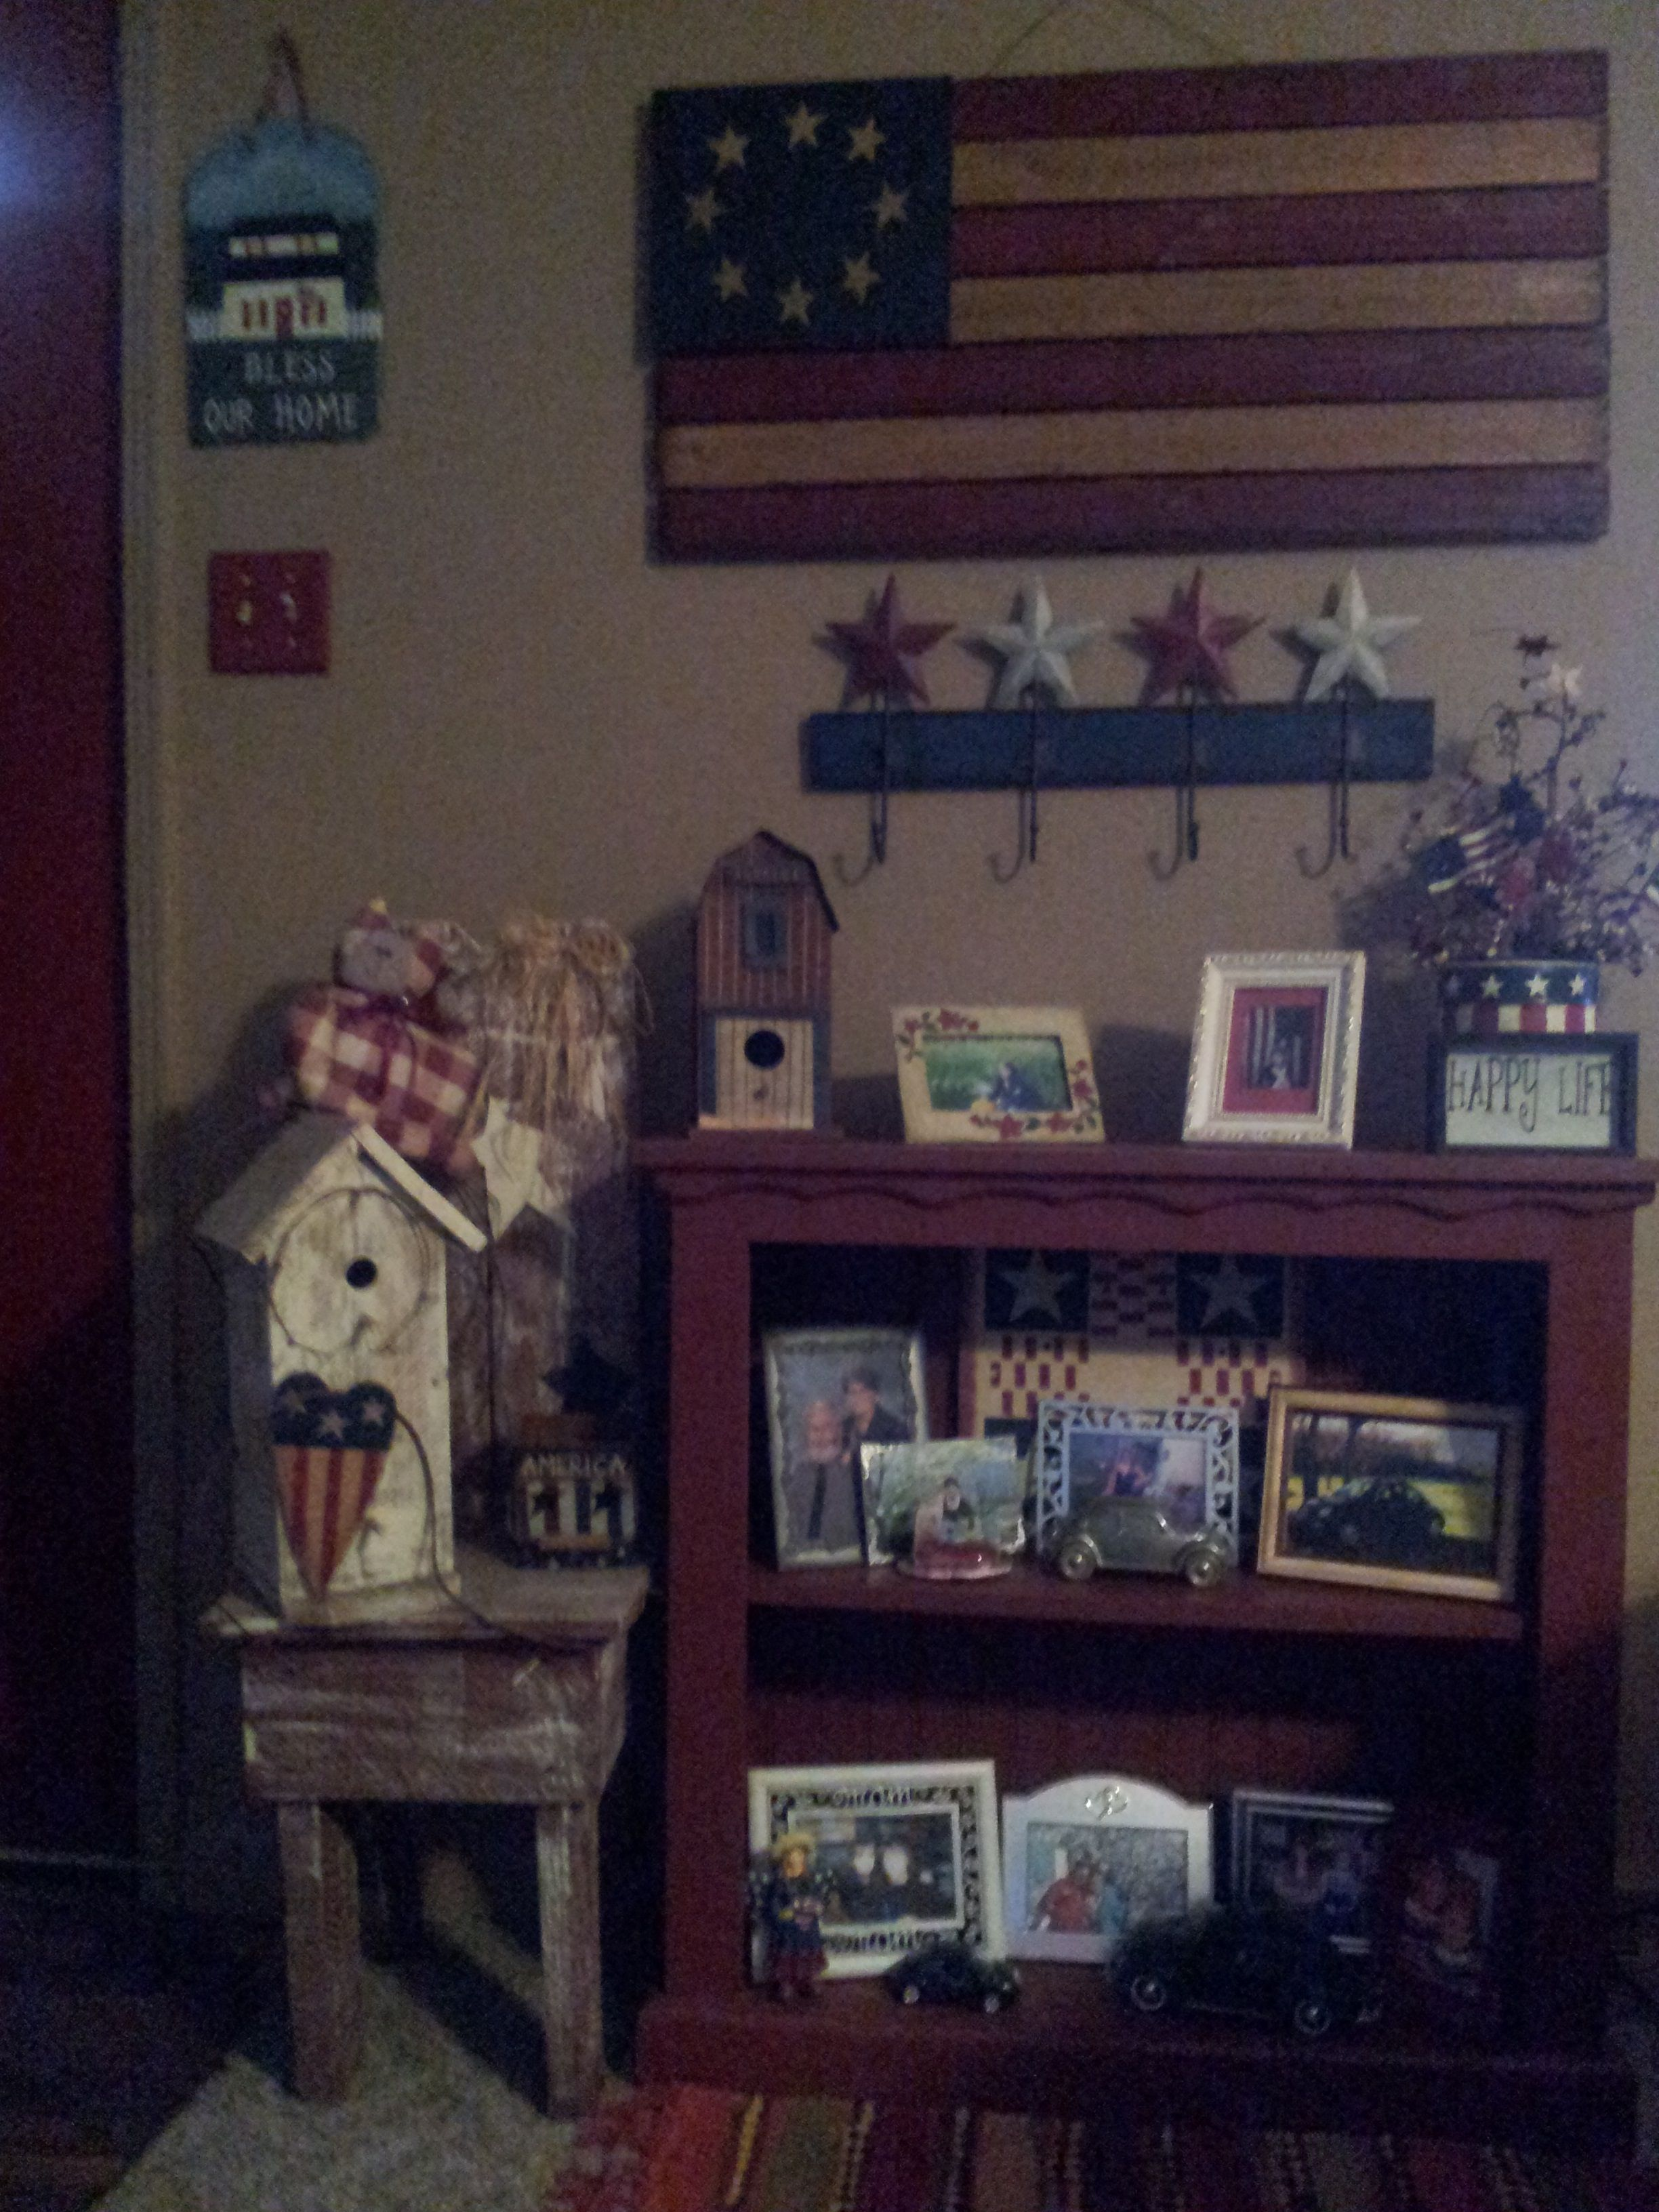 Pin by Christy Tate on New living room ideas ie: Americana theme